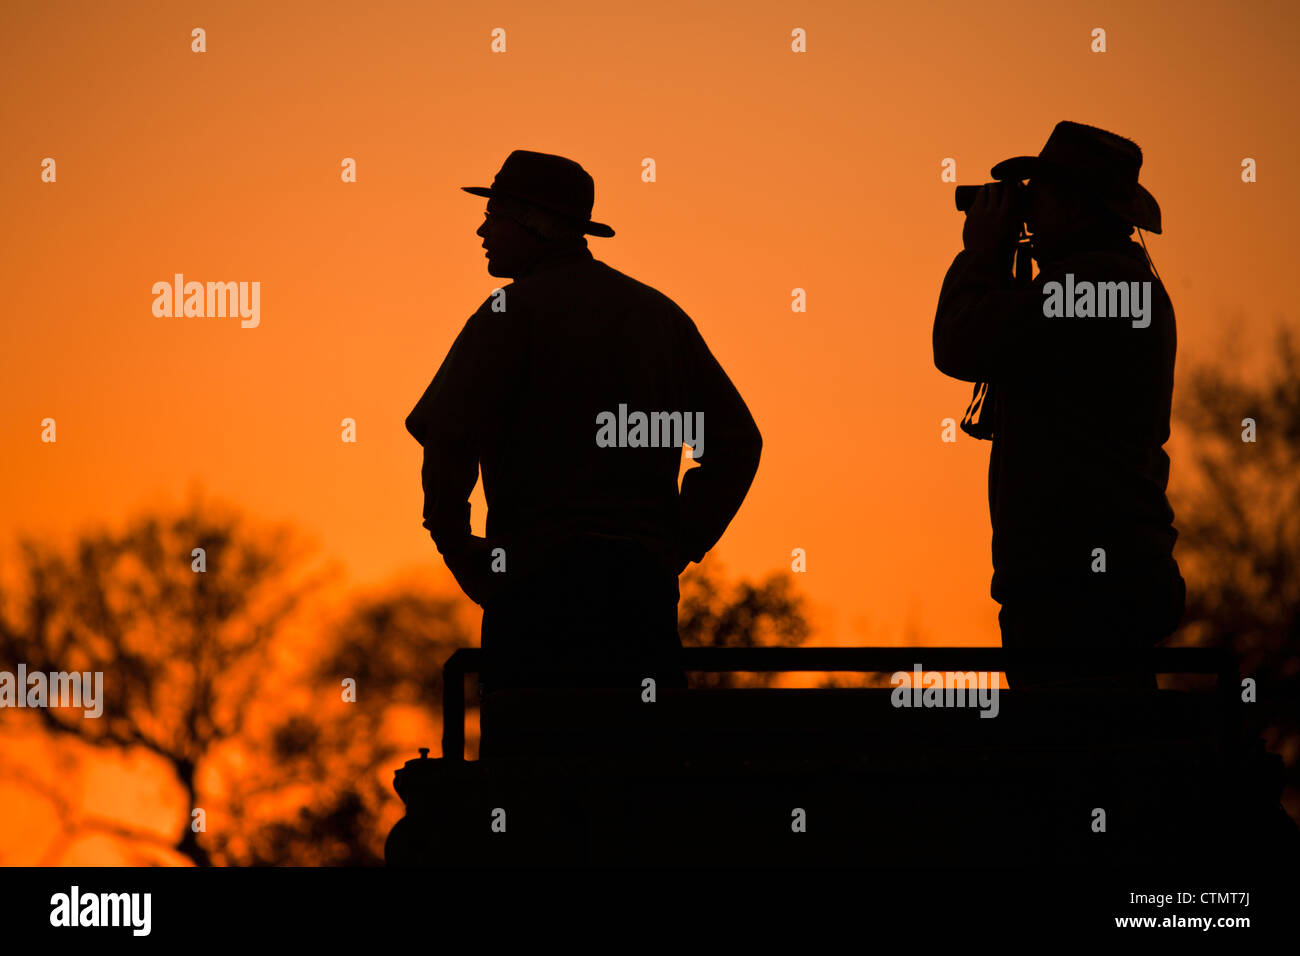 Two silhouettes in sunset, Hlane Big Game Park, Swaziland - Stock Image